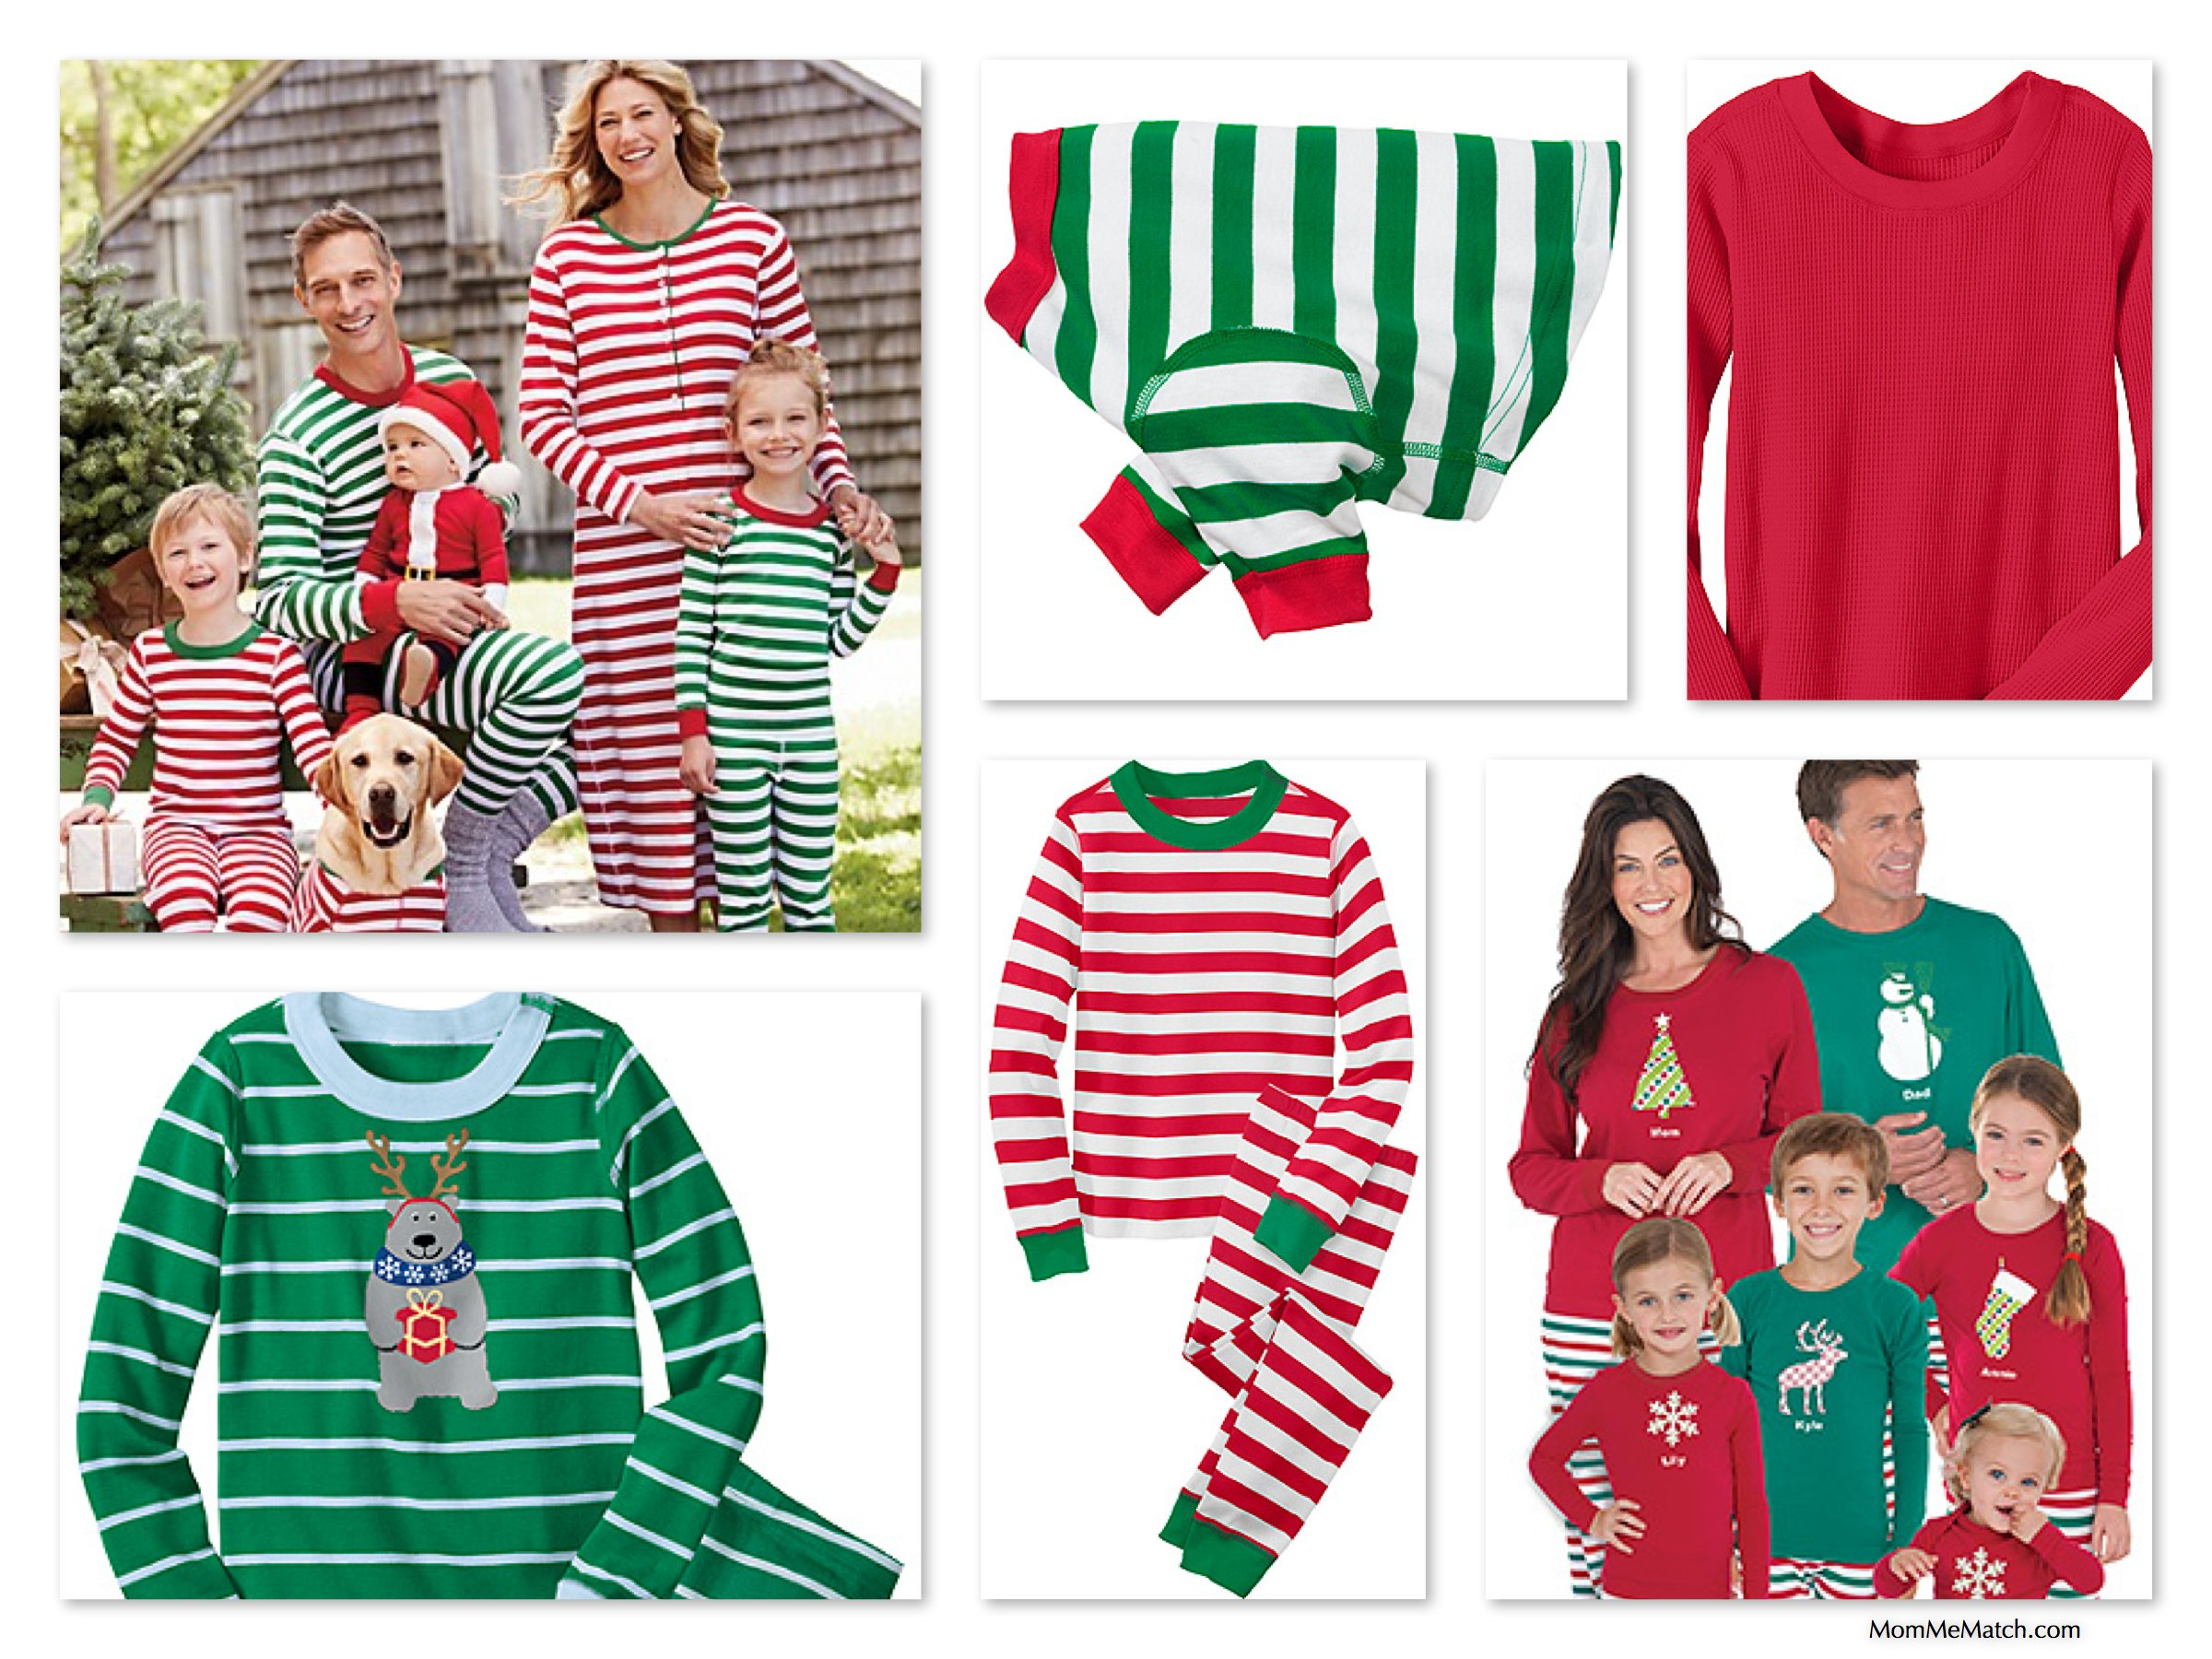 Striped PJs for the Whole Family | MomMeMatch.com